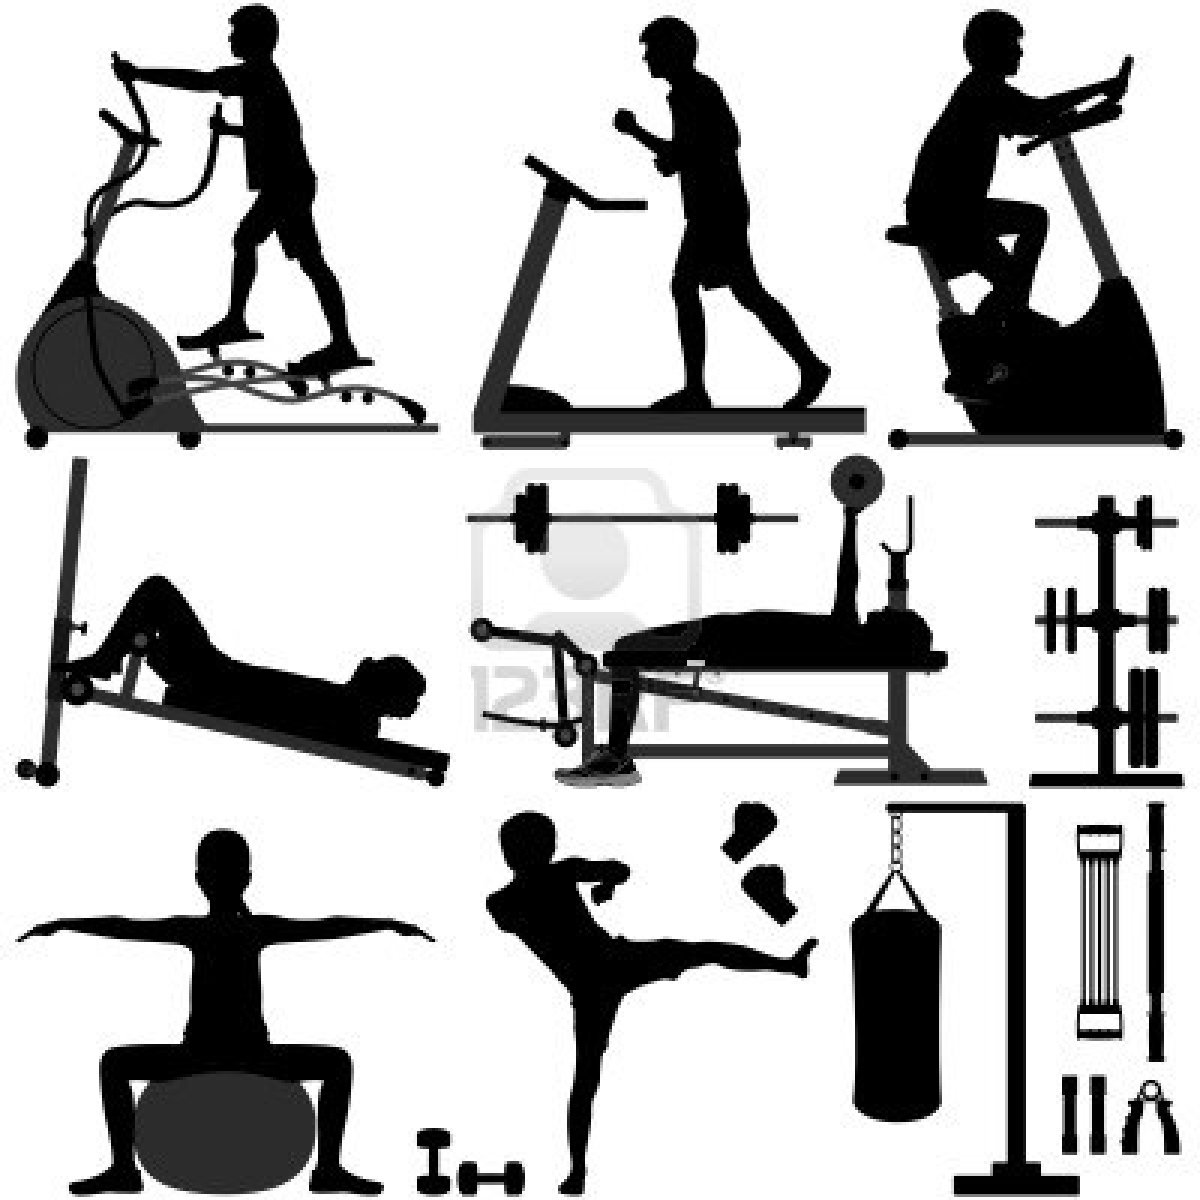 Exercise equipment you can use sitting down